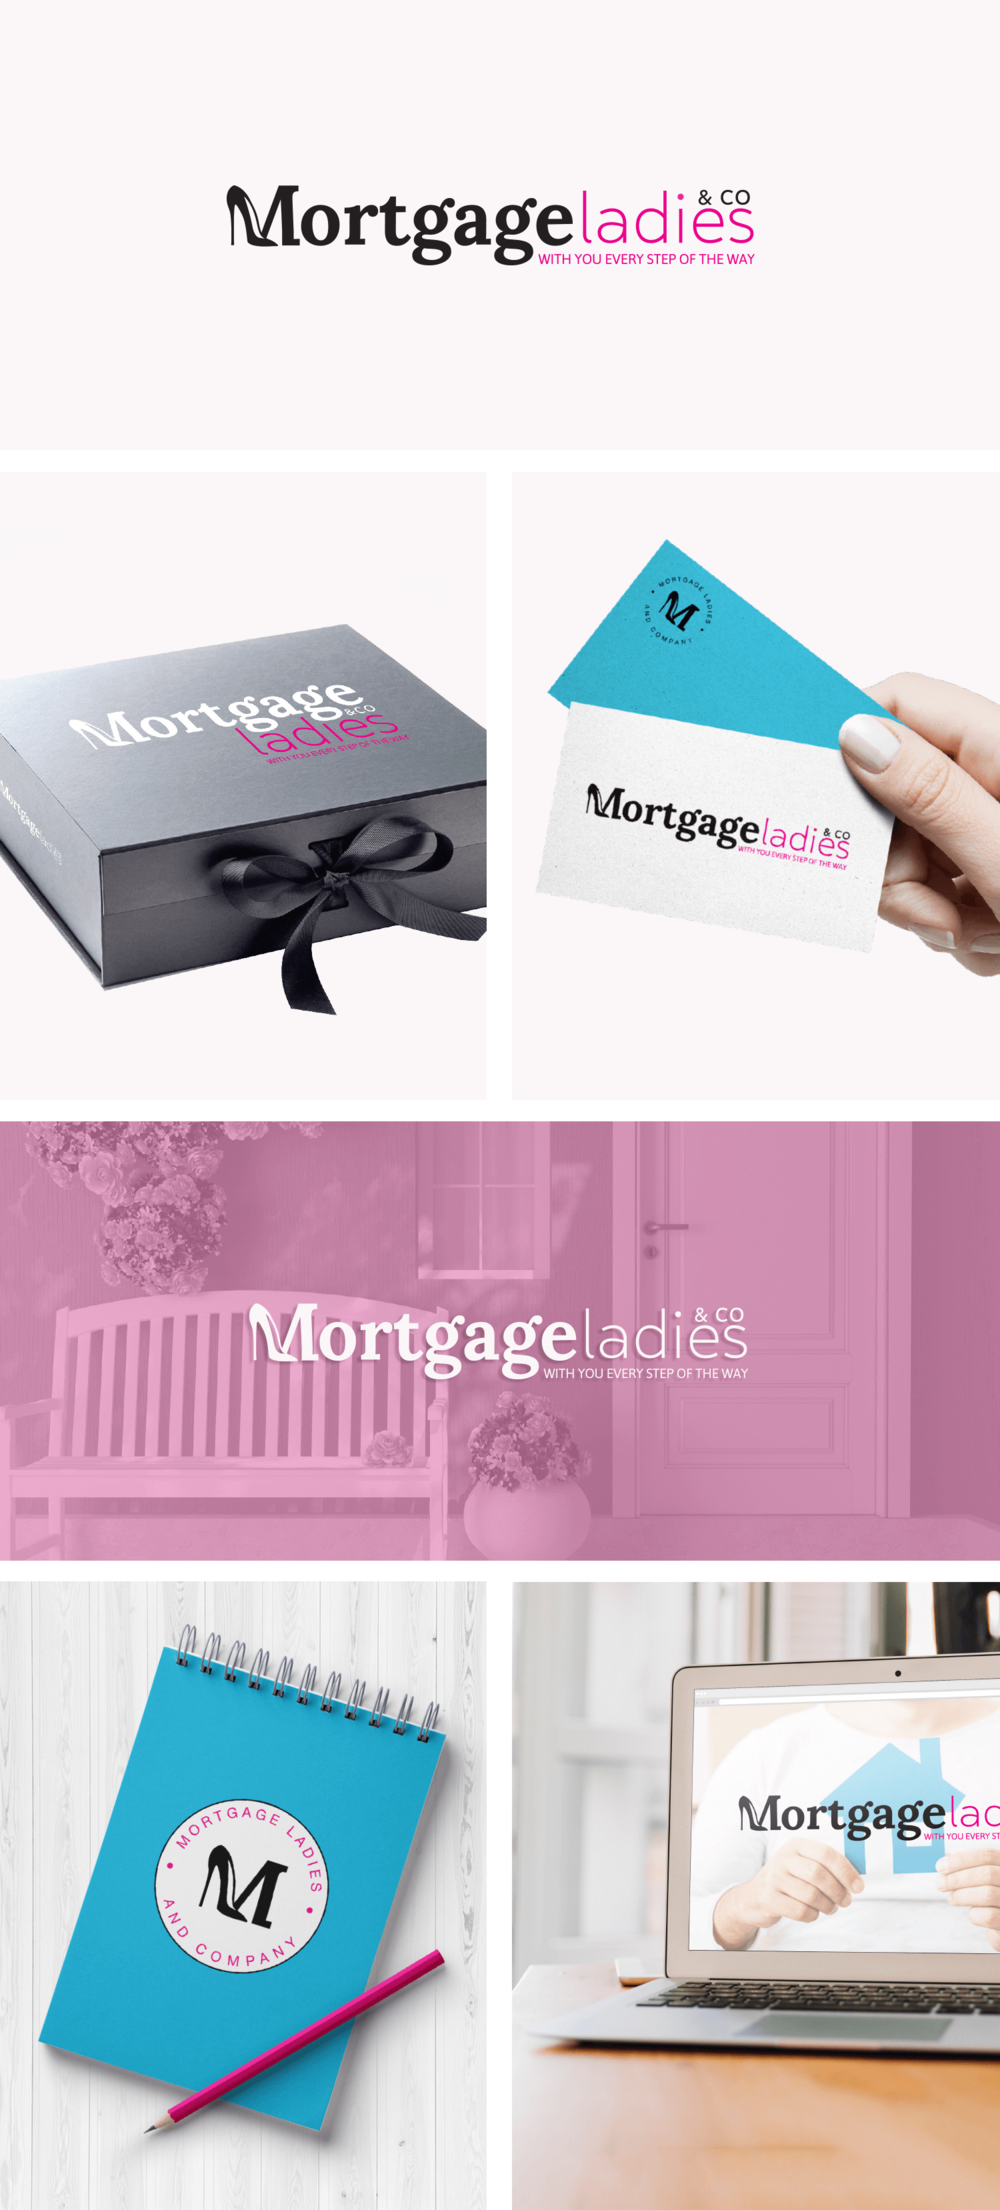 Mortgage-ladiesbranding-show-case.png